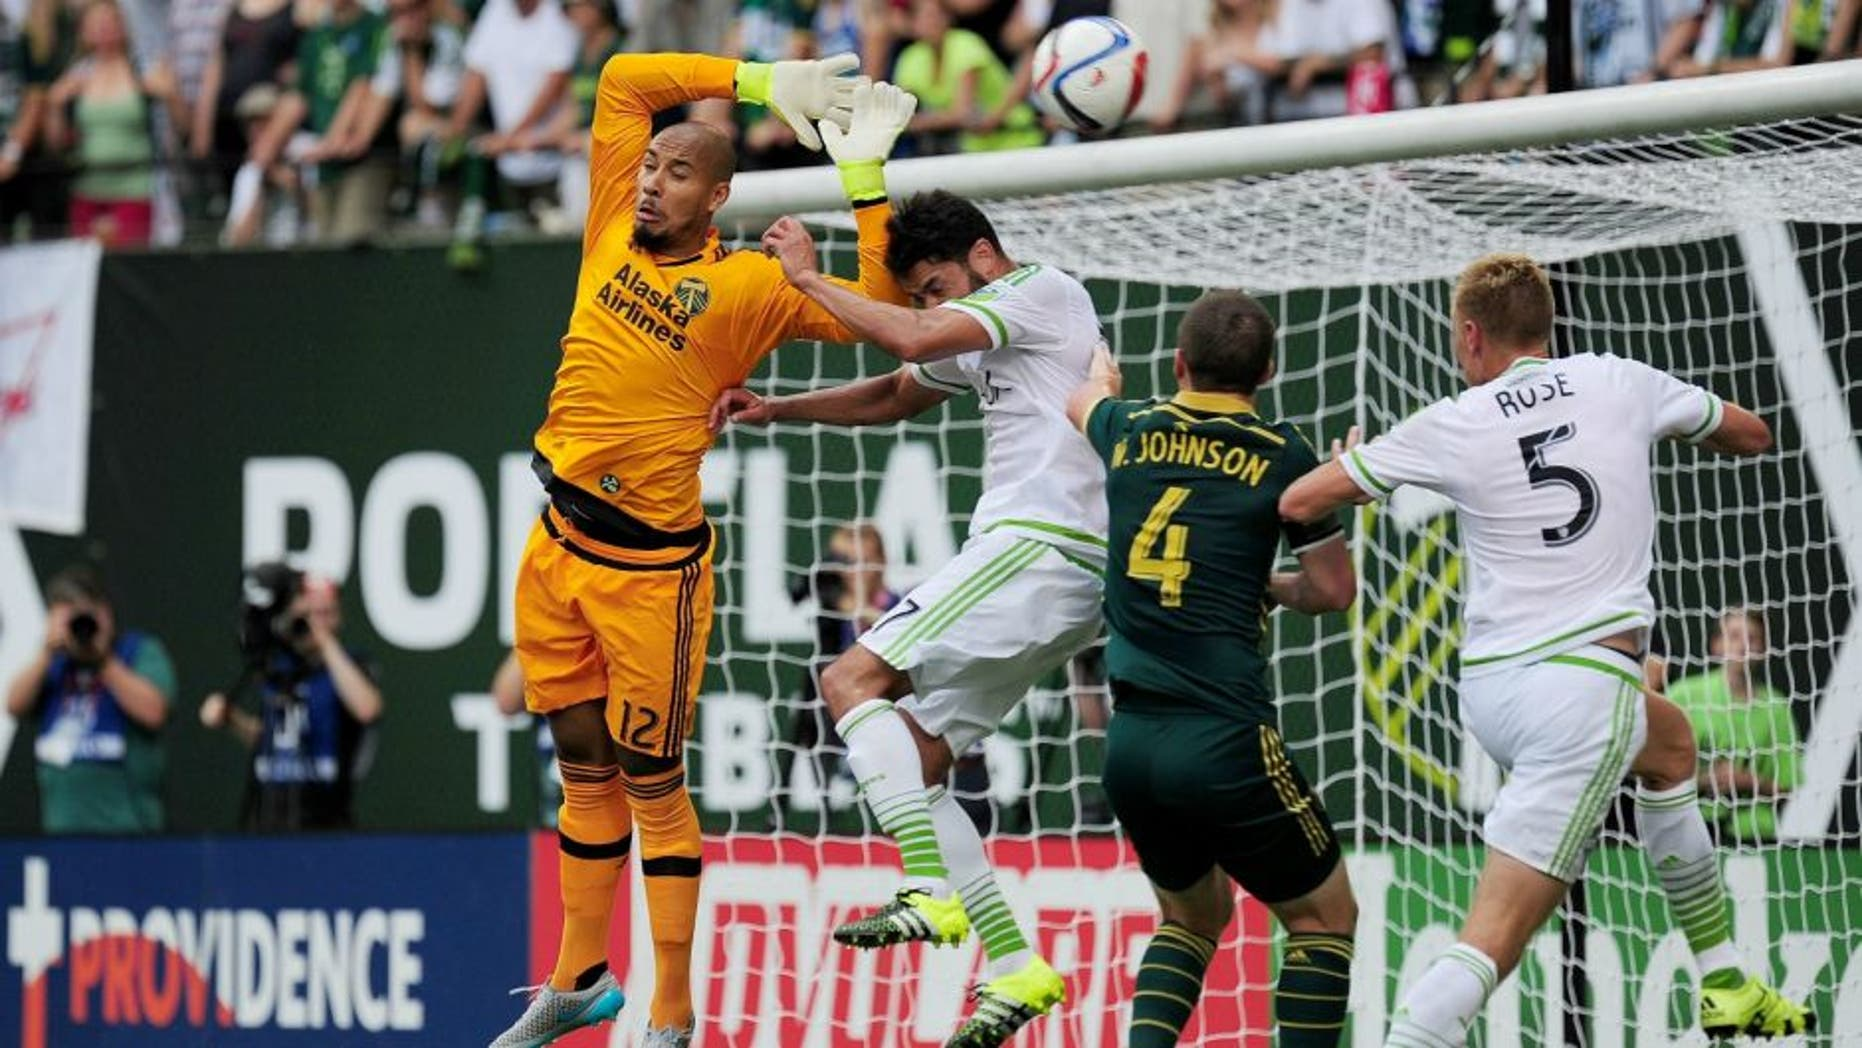 Jun 28, 2015; Portland, OR, USA; Portland Timbers goalkeeper Adam Kwarasey (12) makes sure the ball is out of reach during the first half of the game against the Seattle Sounders at Providence Park. Mandatory Credit: Godofredo Vasquez-USA TODAY Sports